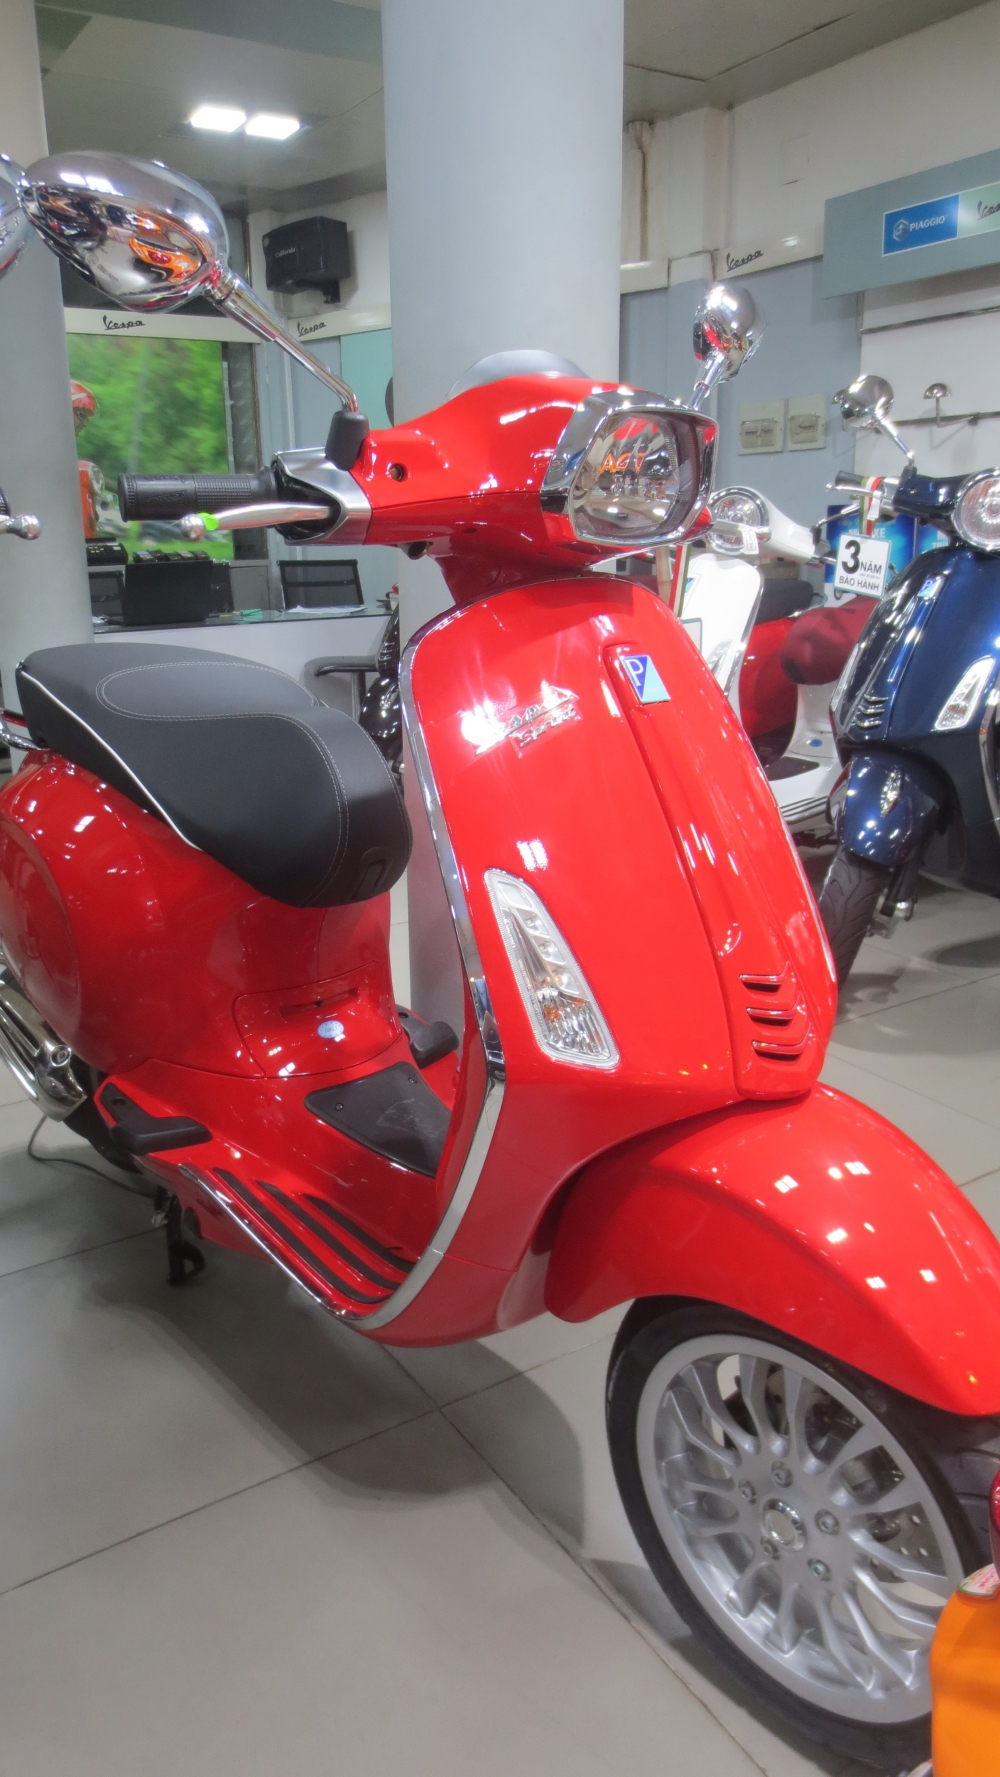 VESPA Sprint ABS chinh hang gia re nhat SG - 13